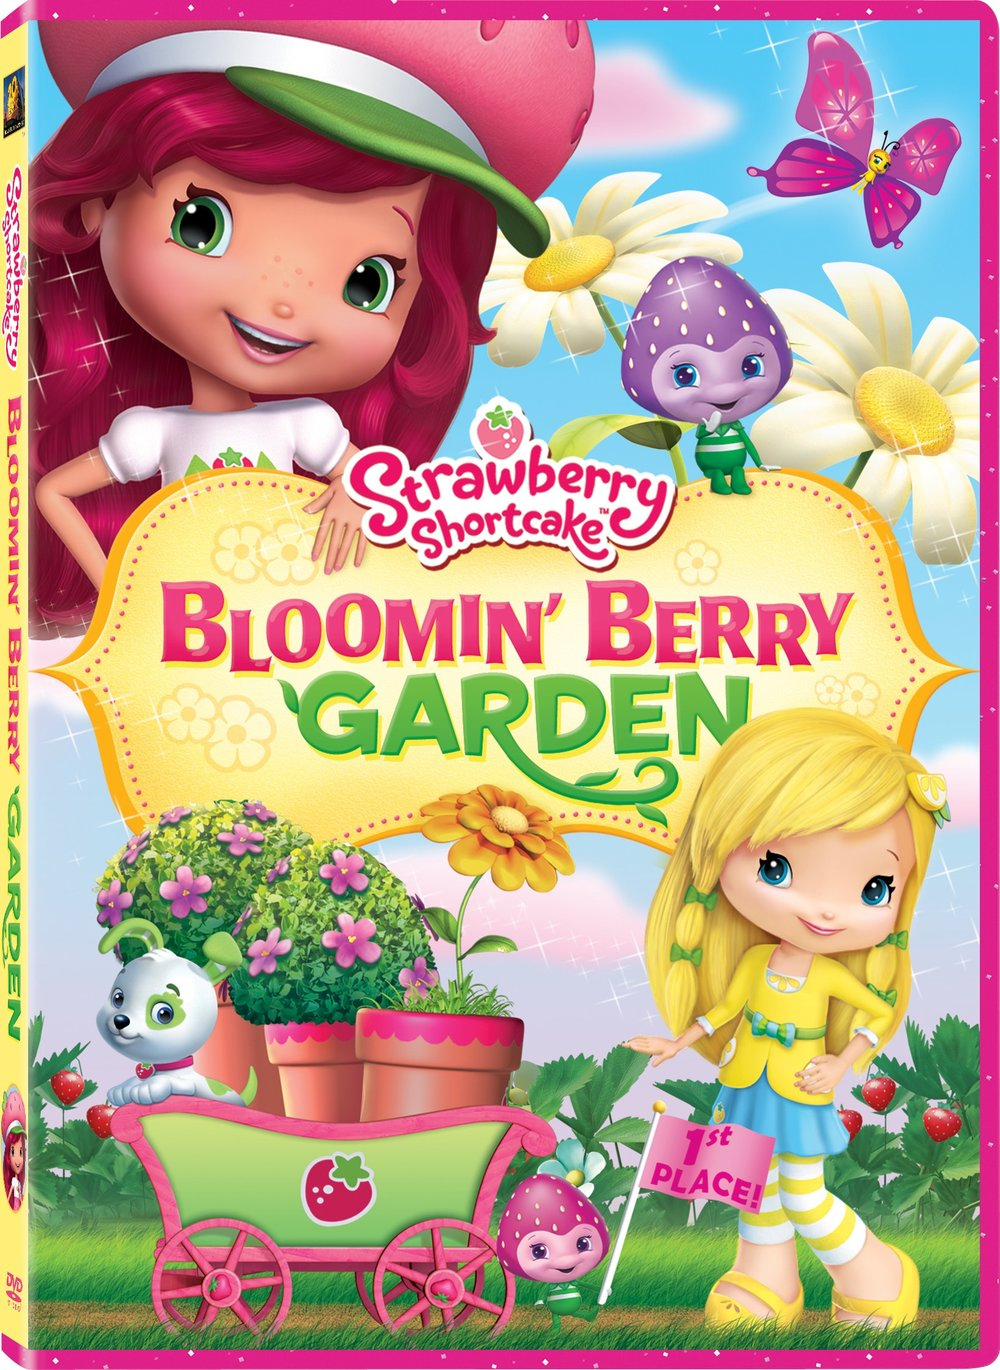 Strawberry-Shortcake-Bloomin-Berry-Garden-DVD.jpg